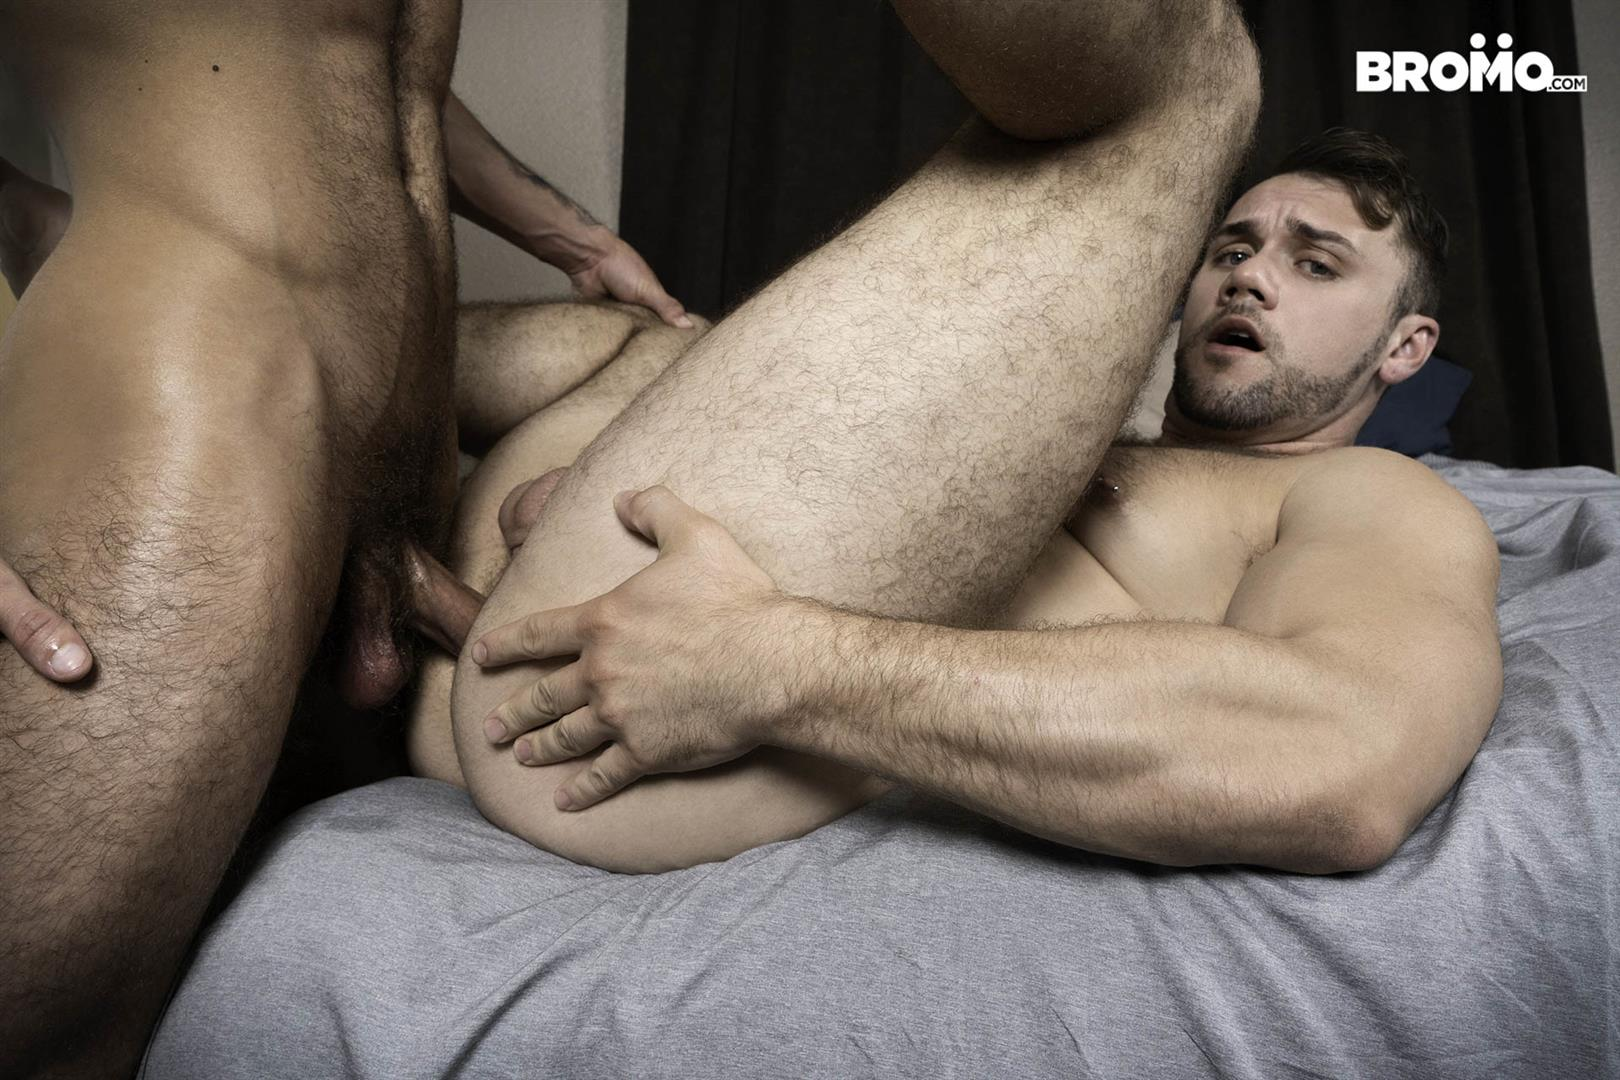 Bromo-Blaze-Austin-and-Blake-Ryder-Big-Cock-Guys-Fucking-Bareback-16 Blaze Austin Gets His Hole Creampied By Blake Ryder